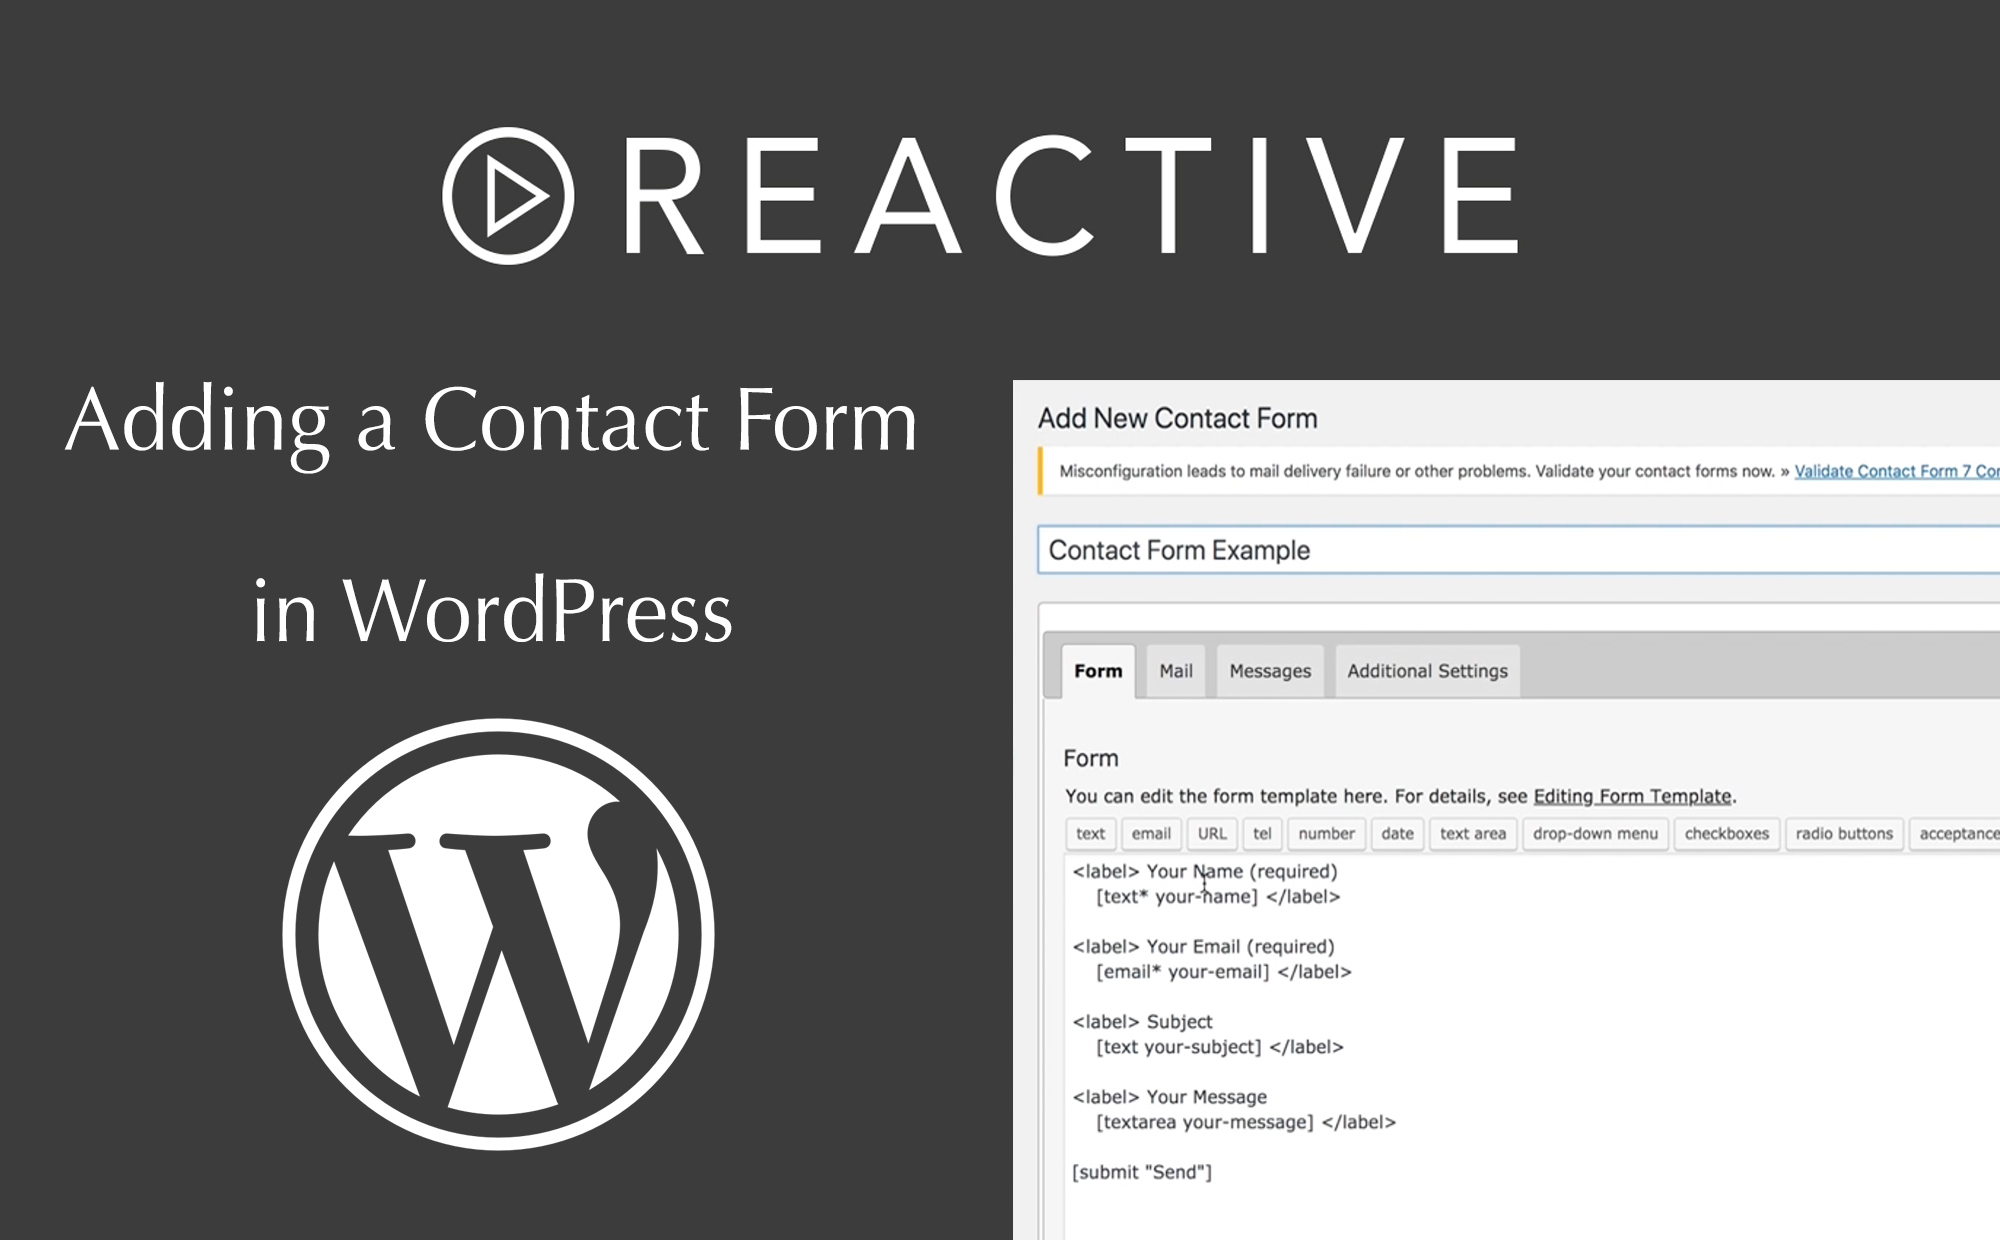 Adding a Contact Form in WordPress